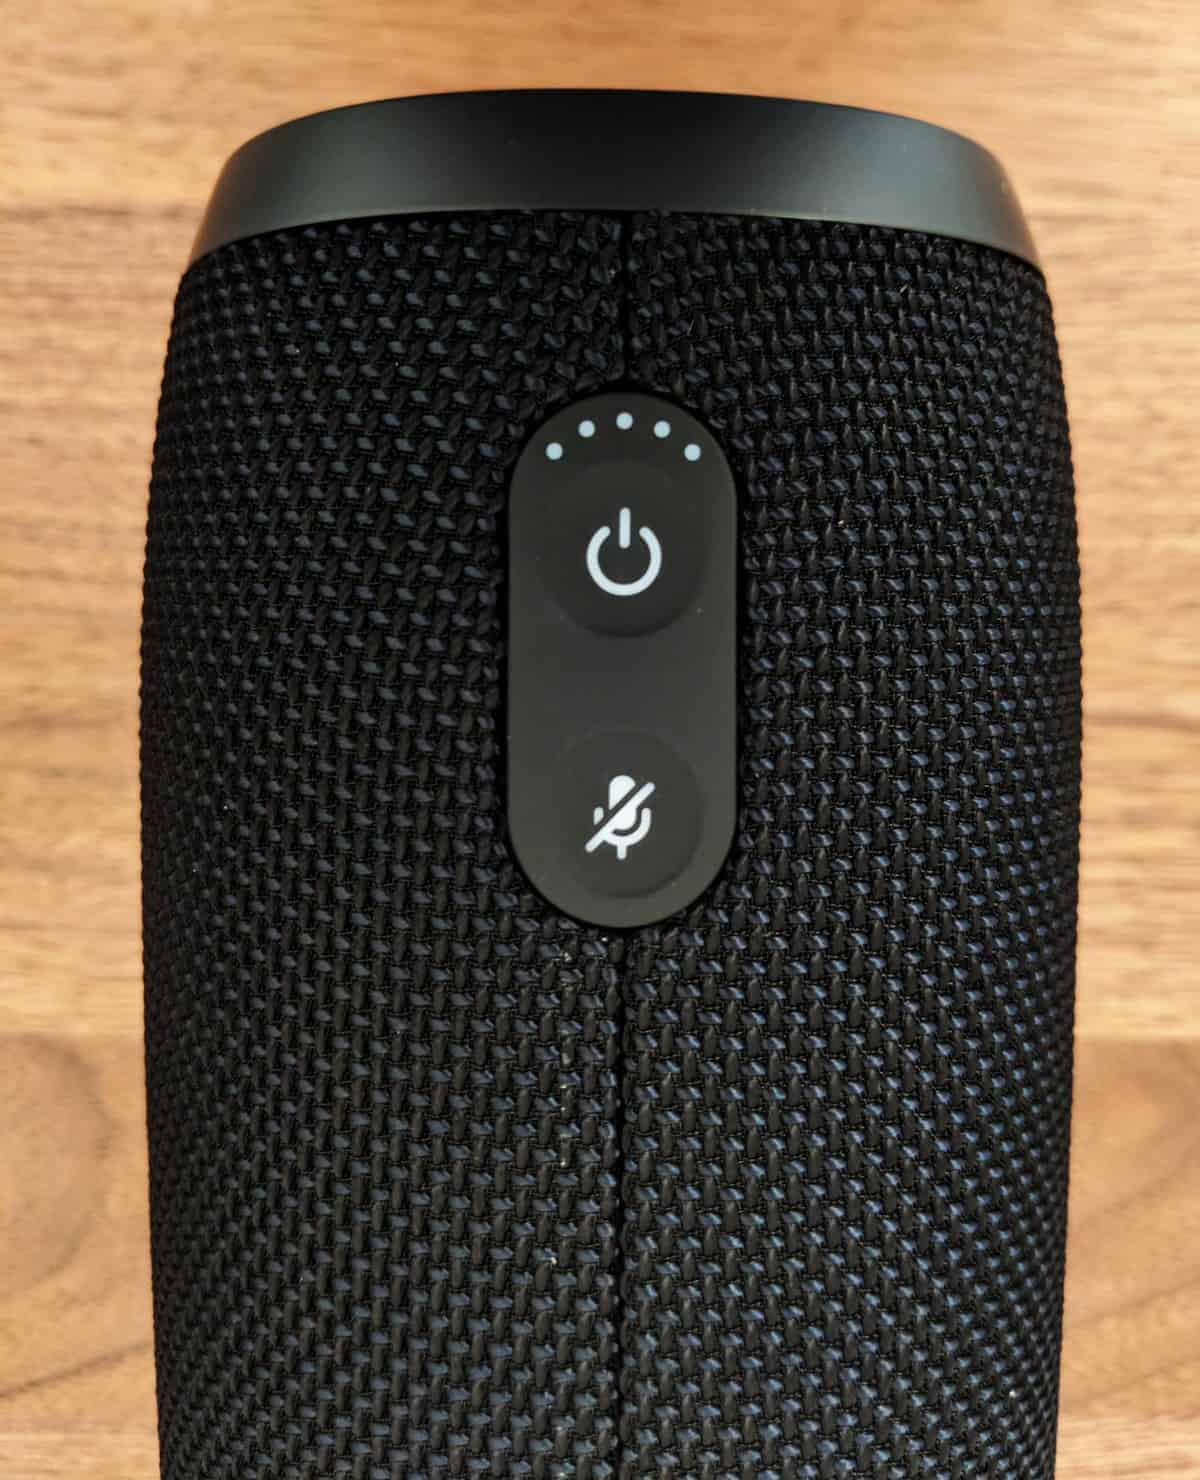 JBL-Link10-Photos17 JBL Link 10 Voice-Activated Bluetooth Speaker Review